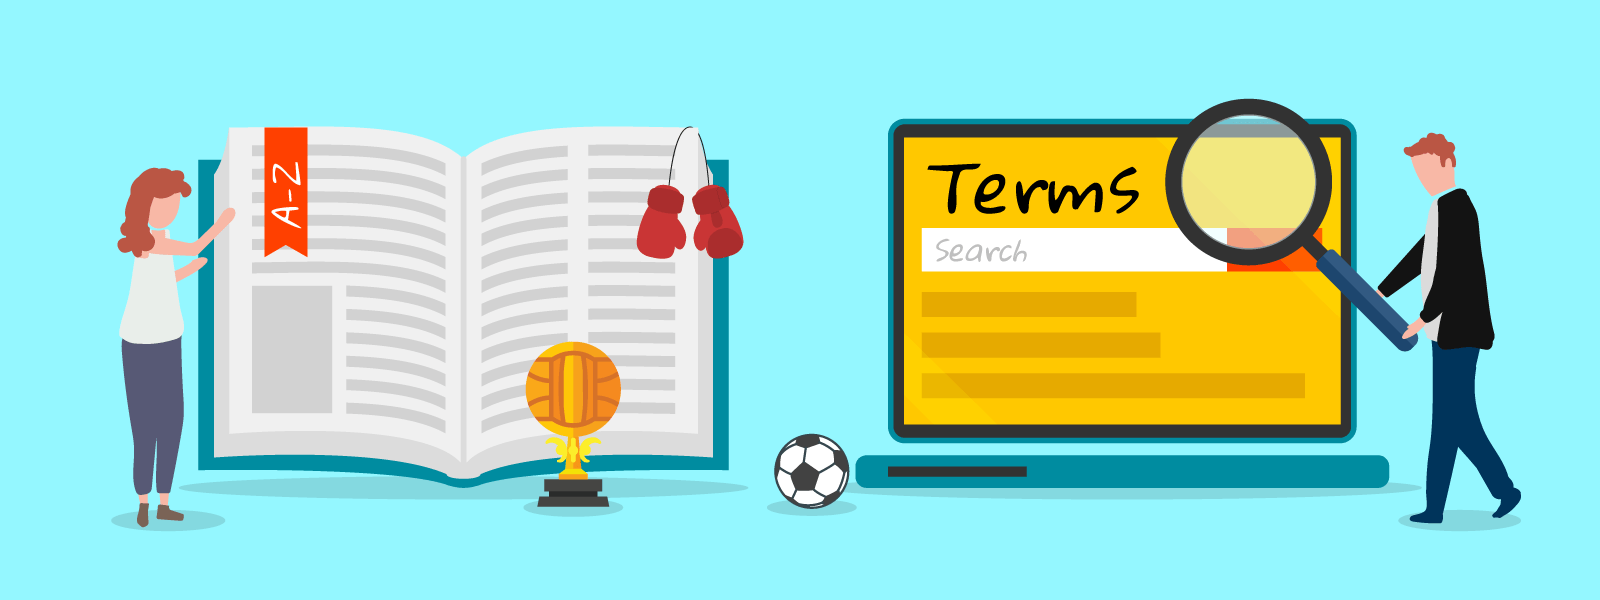 Football betting terms and definitions financial spread betting investopedia cfa